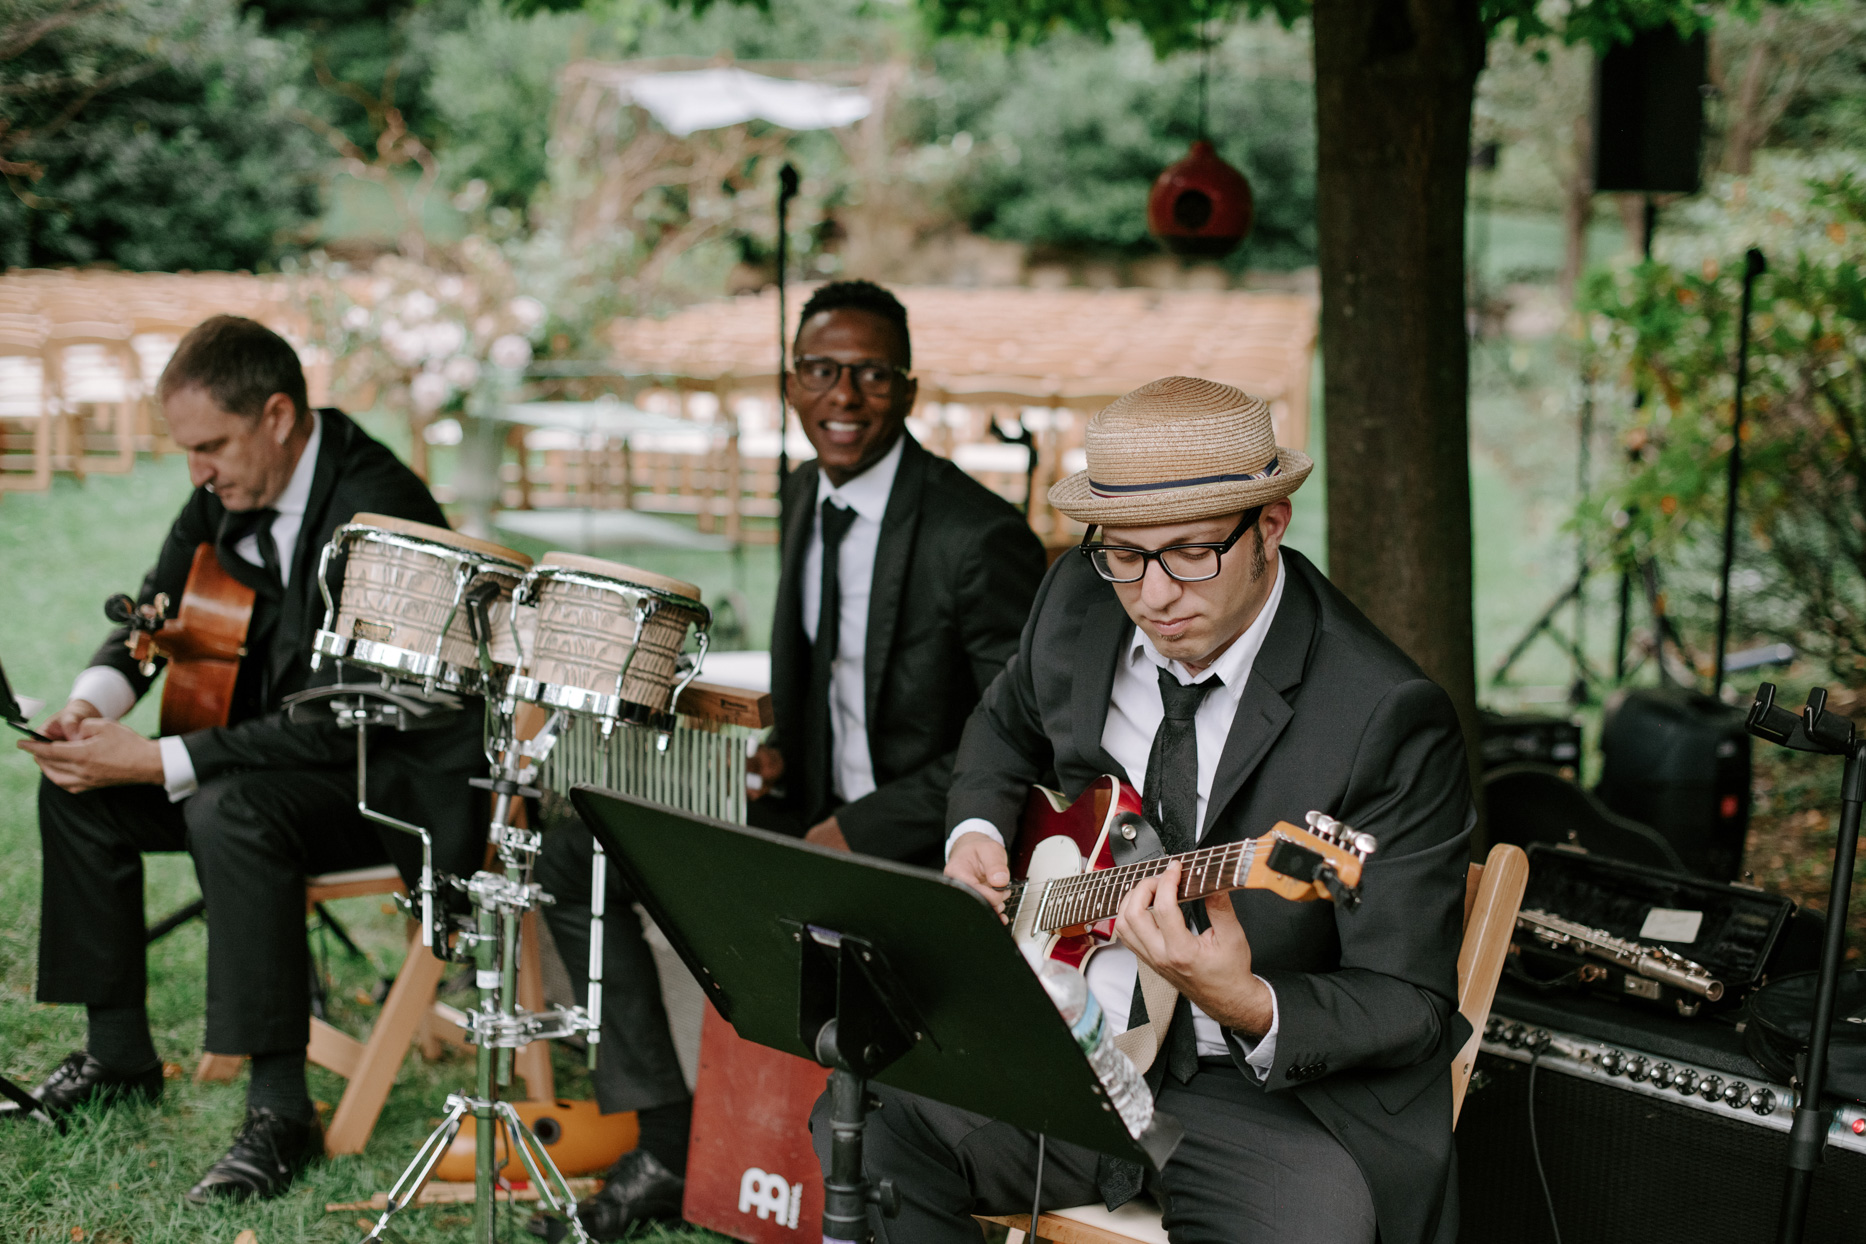 trio playing live music at wedding ceremony